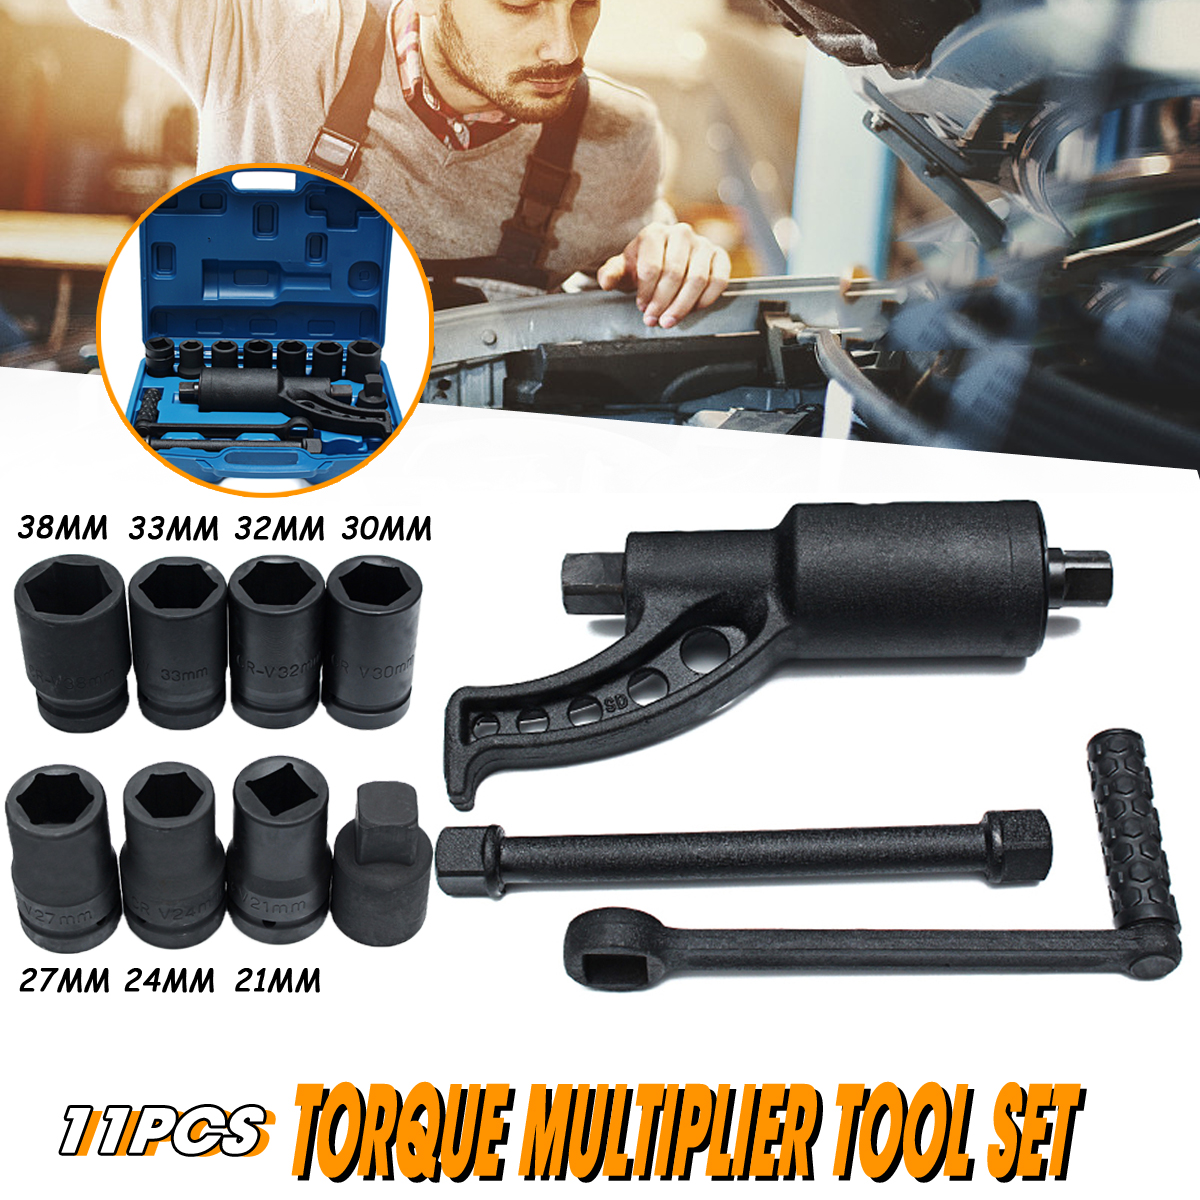 цена на Torque Multiplier Wrench Lug Nuts Remover Labor Saving Spanner 8 Crv Socket Torque Wrench Tool Set